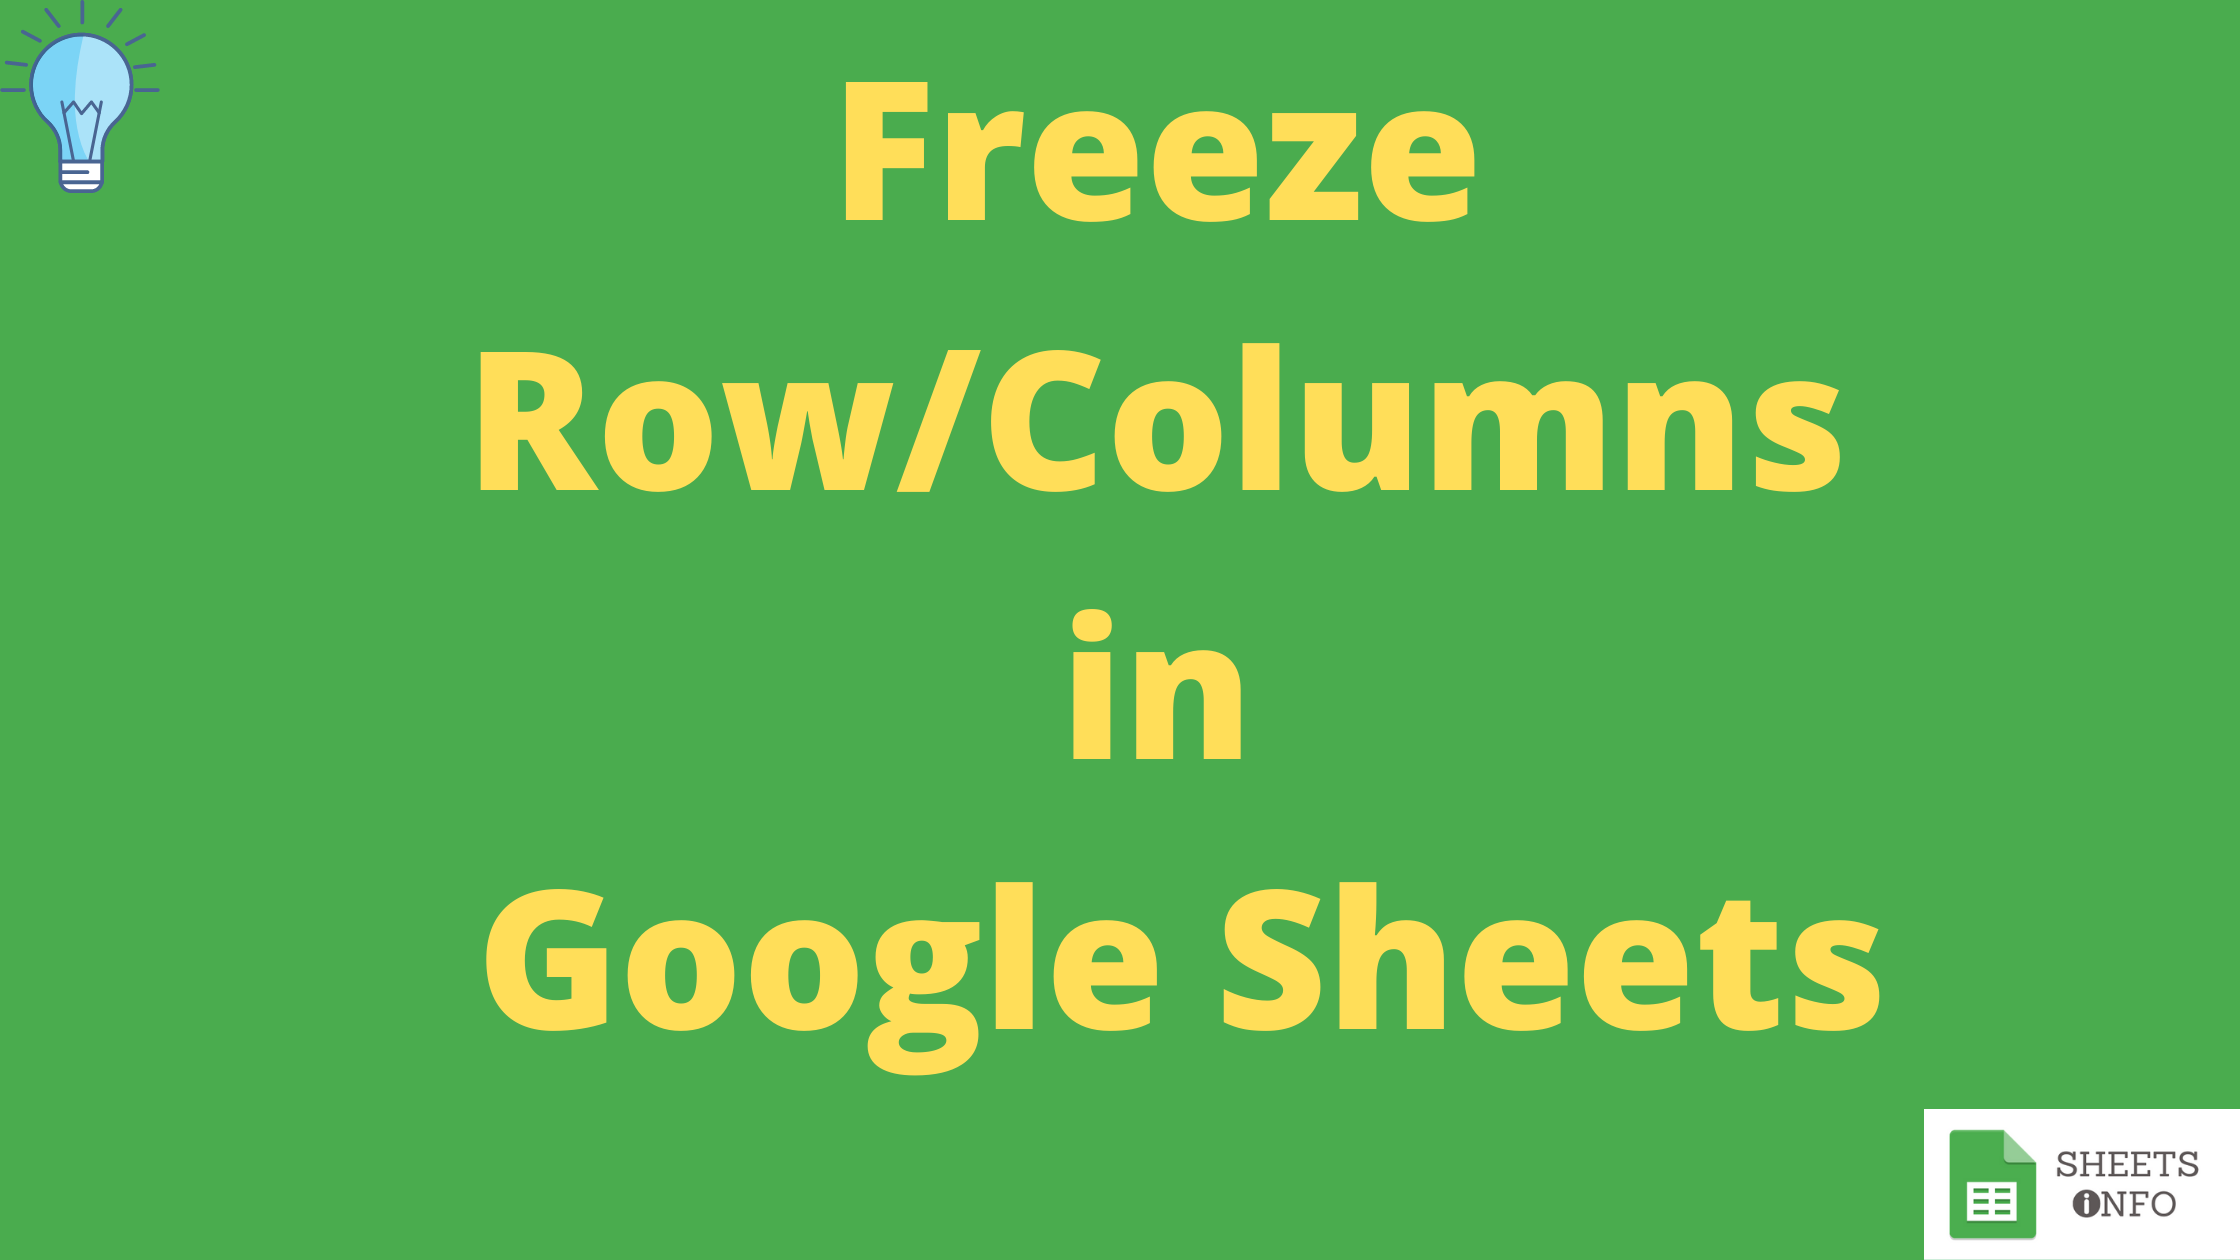 Freeze Row/Columns in Google Sheets